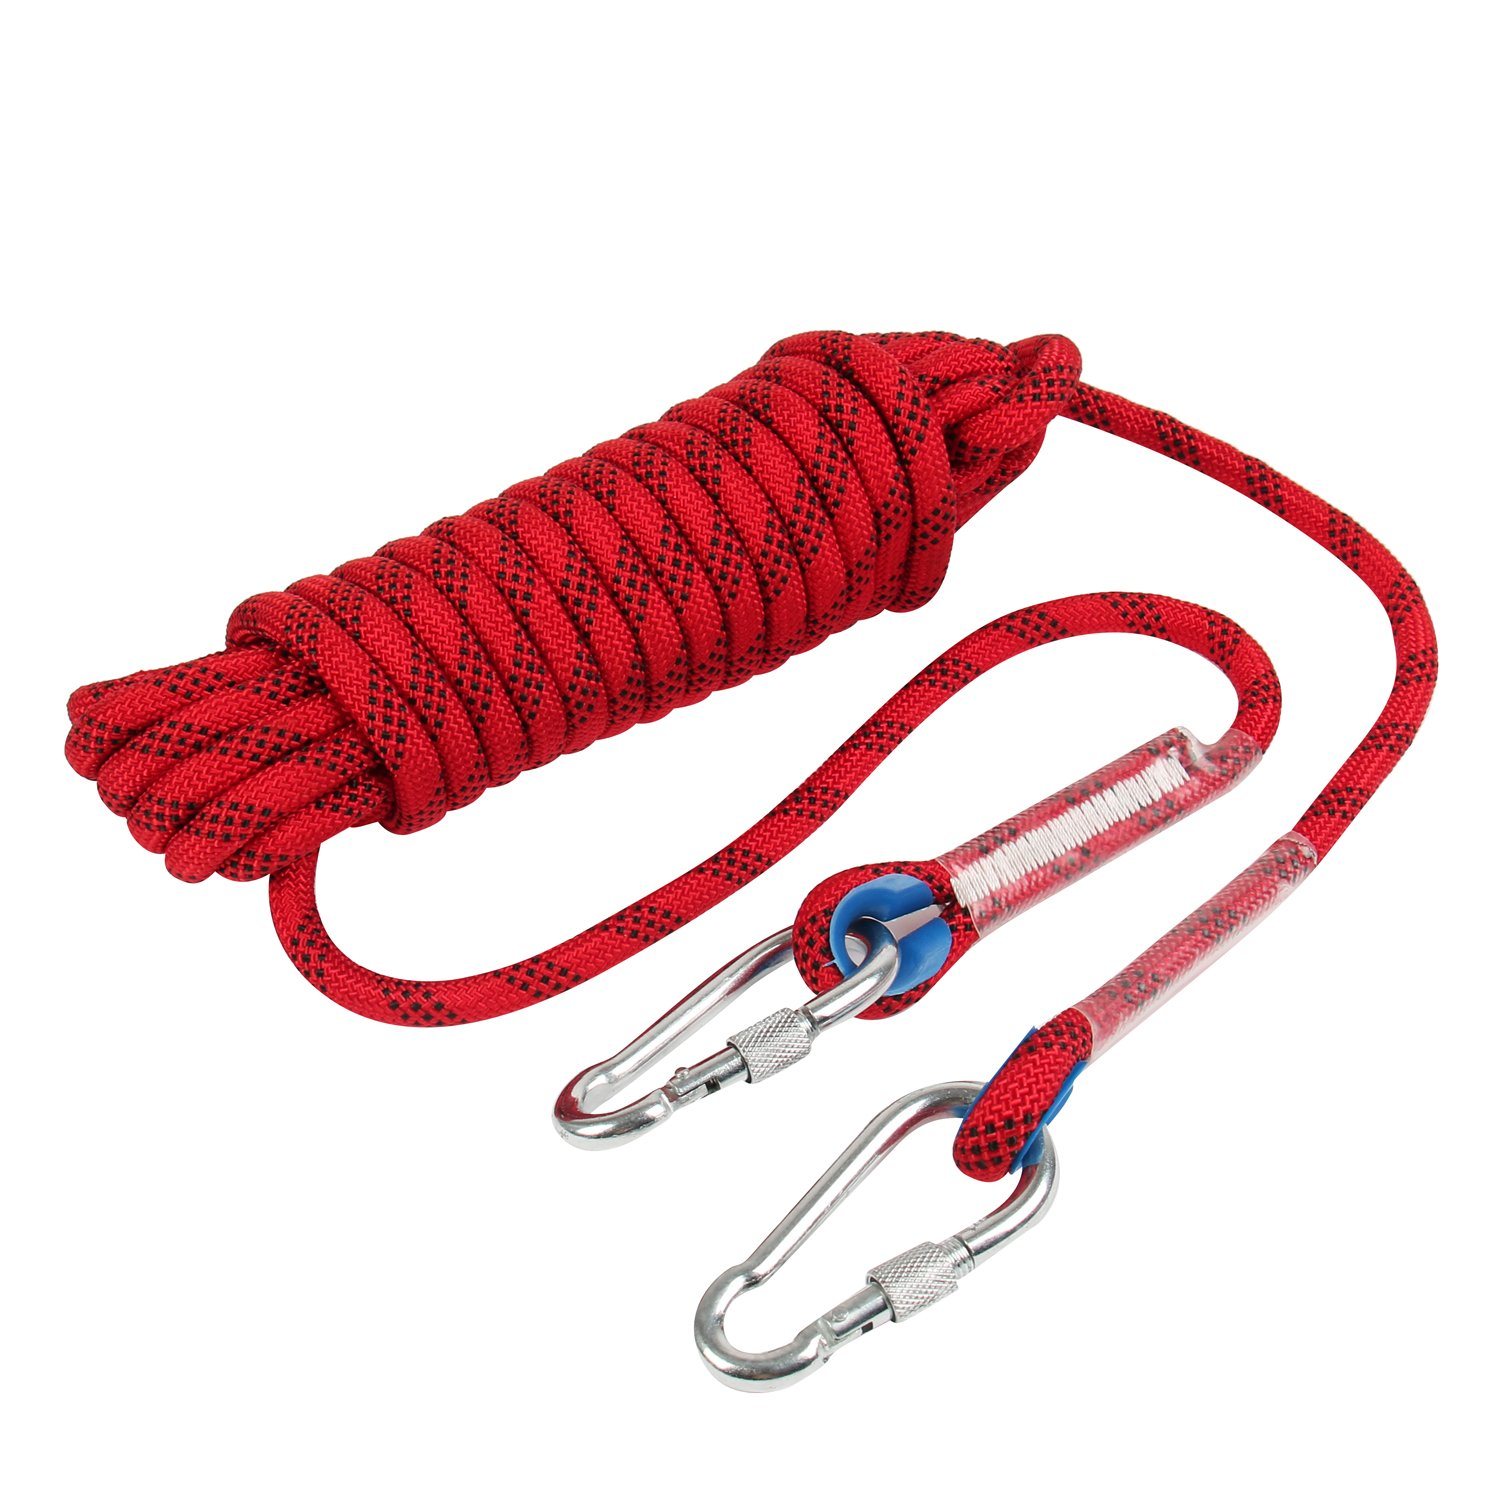 HonYan 10M(33ft) 12mm Outdoor Climbing Rope Escape Rope Climbing Equipment Fire Rescue Parachute Rope